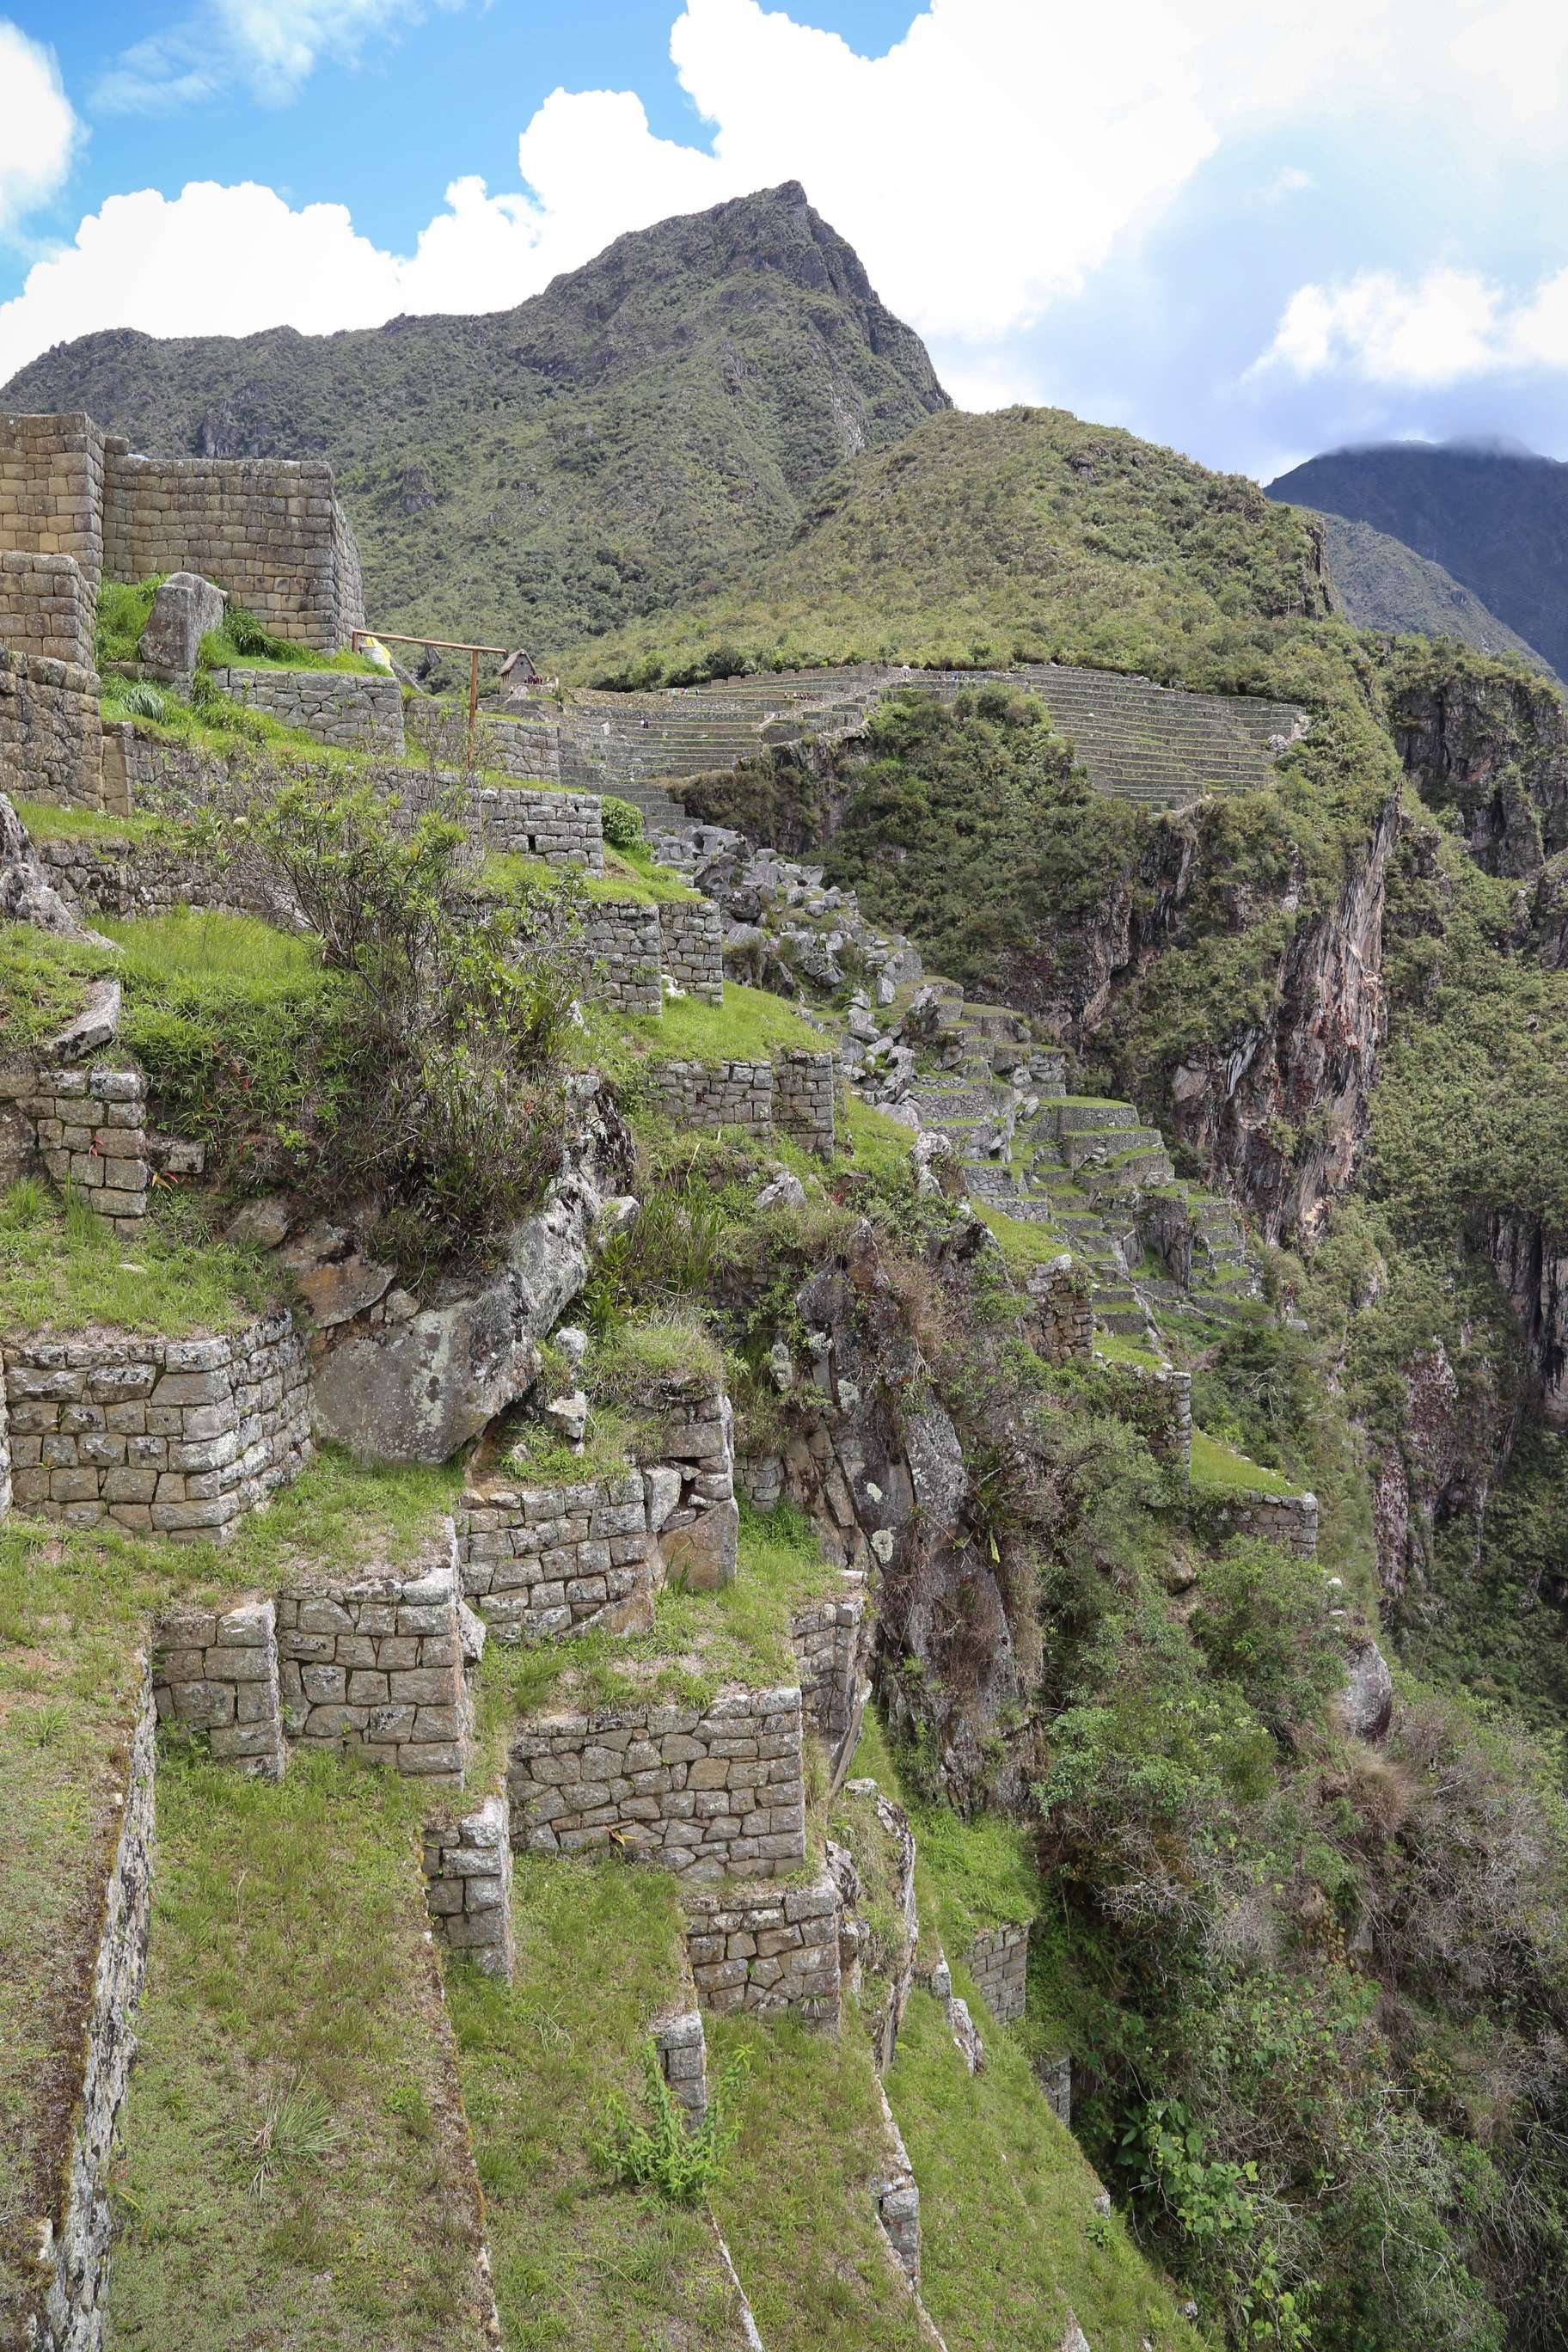 It might have been easier to build on a different site, but Pachacuti, the greatest Inca of all, wanted to make a statement. And he did.